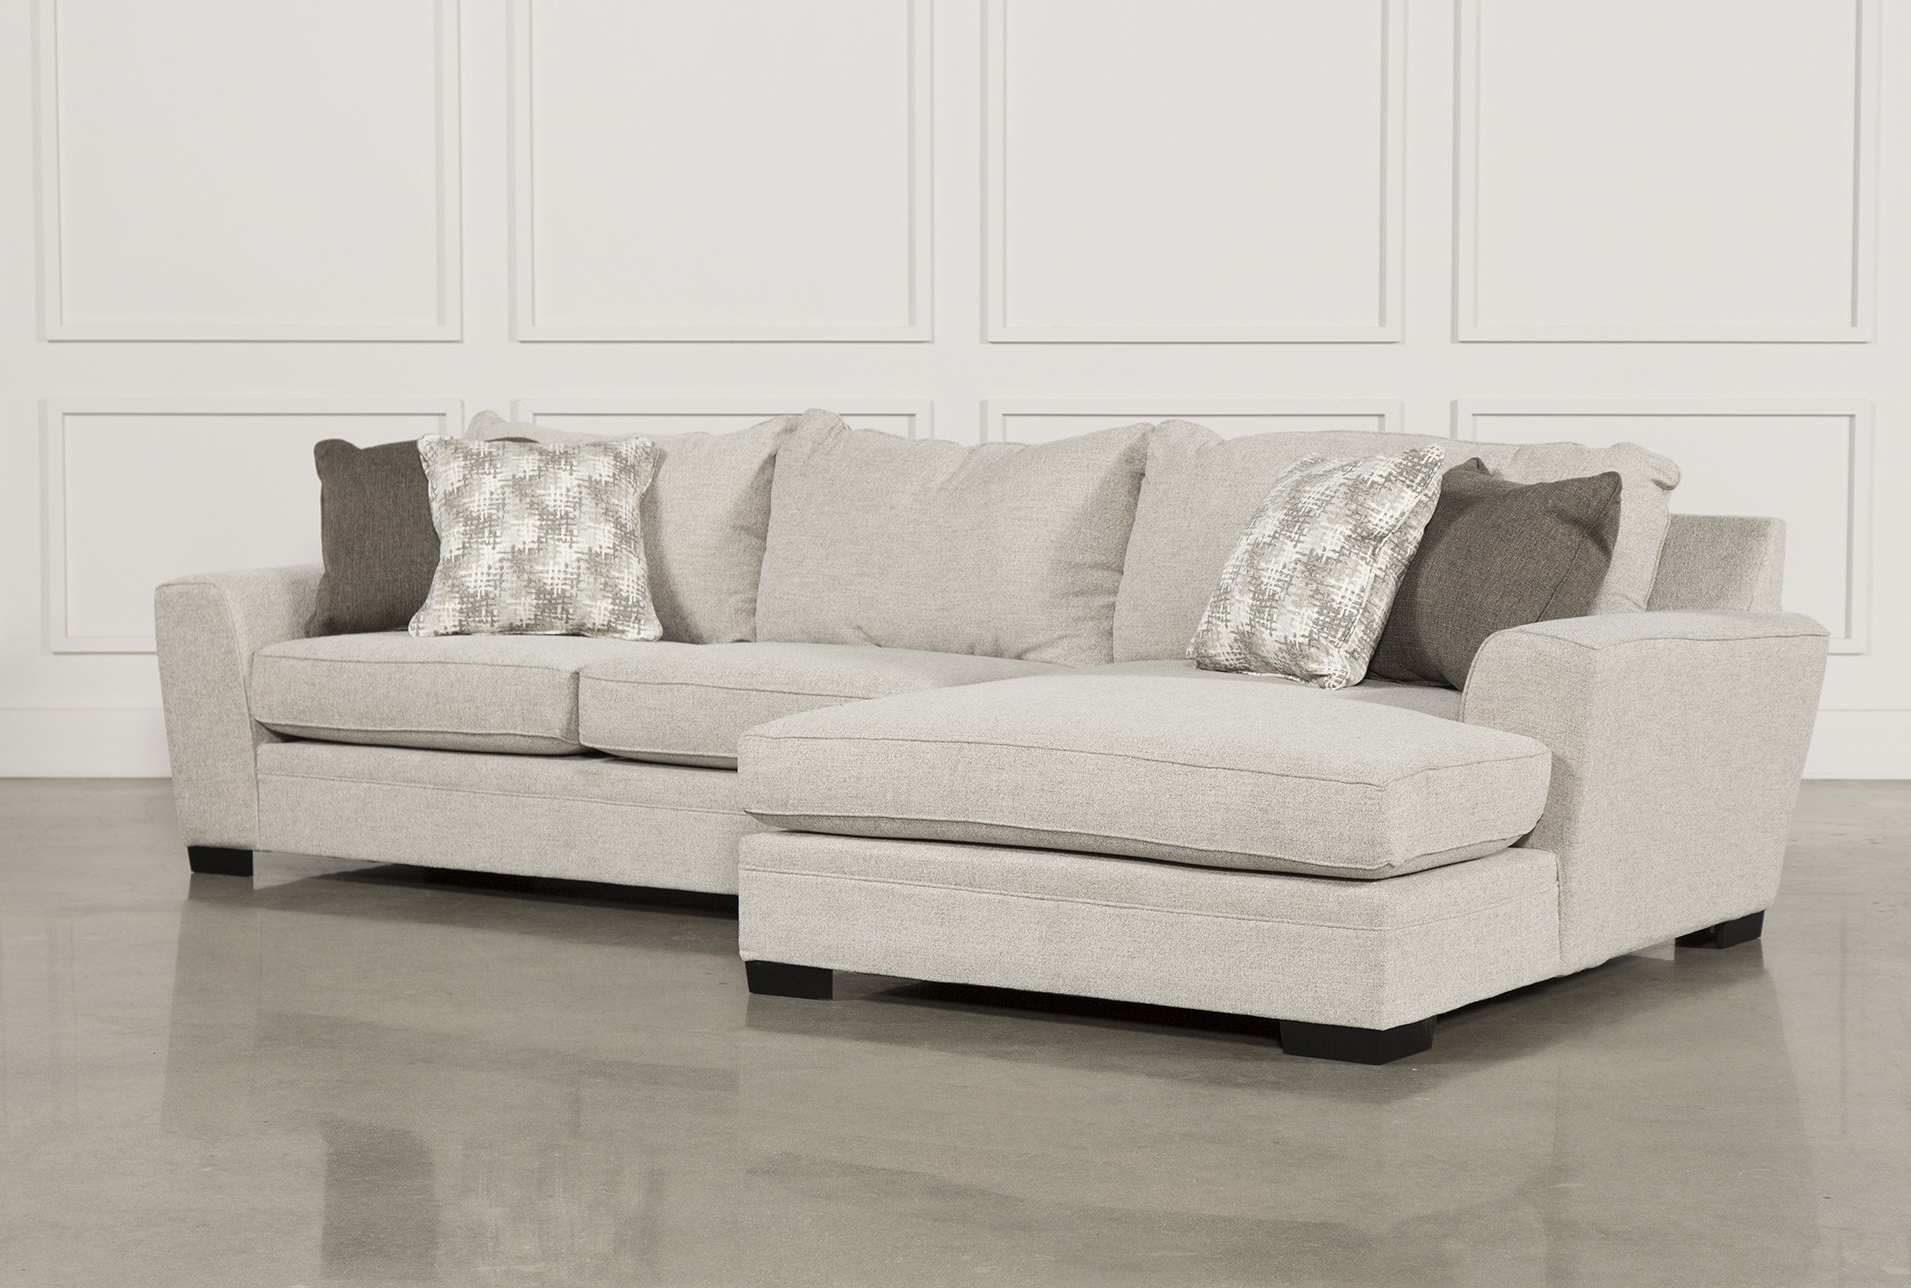 Widely Used Delano 2 Piece Sectional W/laf Oversized Chaise Living Spaces With Regard To Arrowmask 2 Piece Sectionals With Raf Chaise (View 11 of 20)